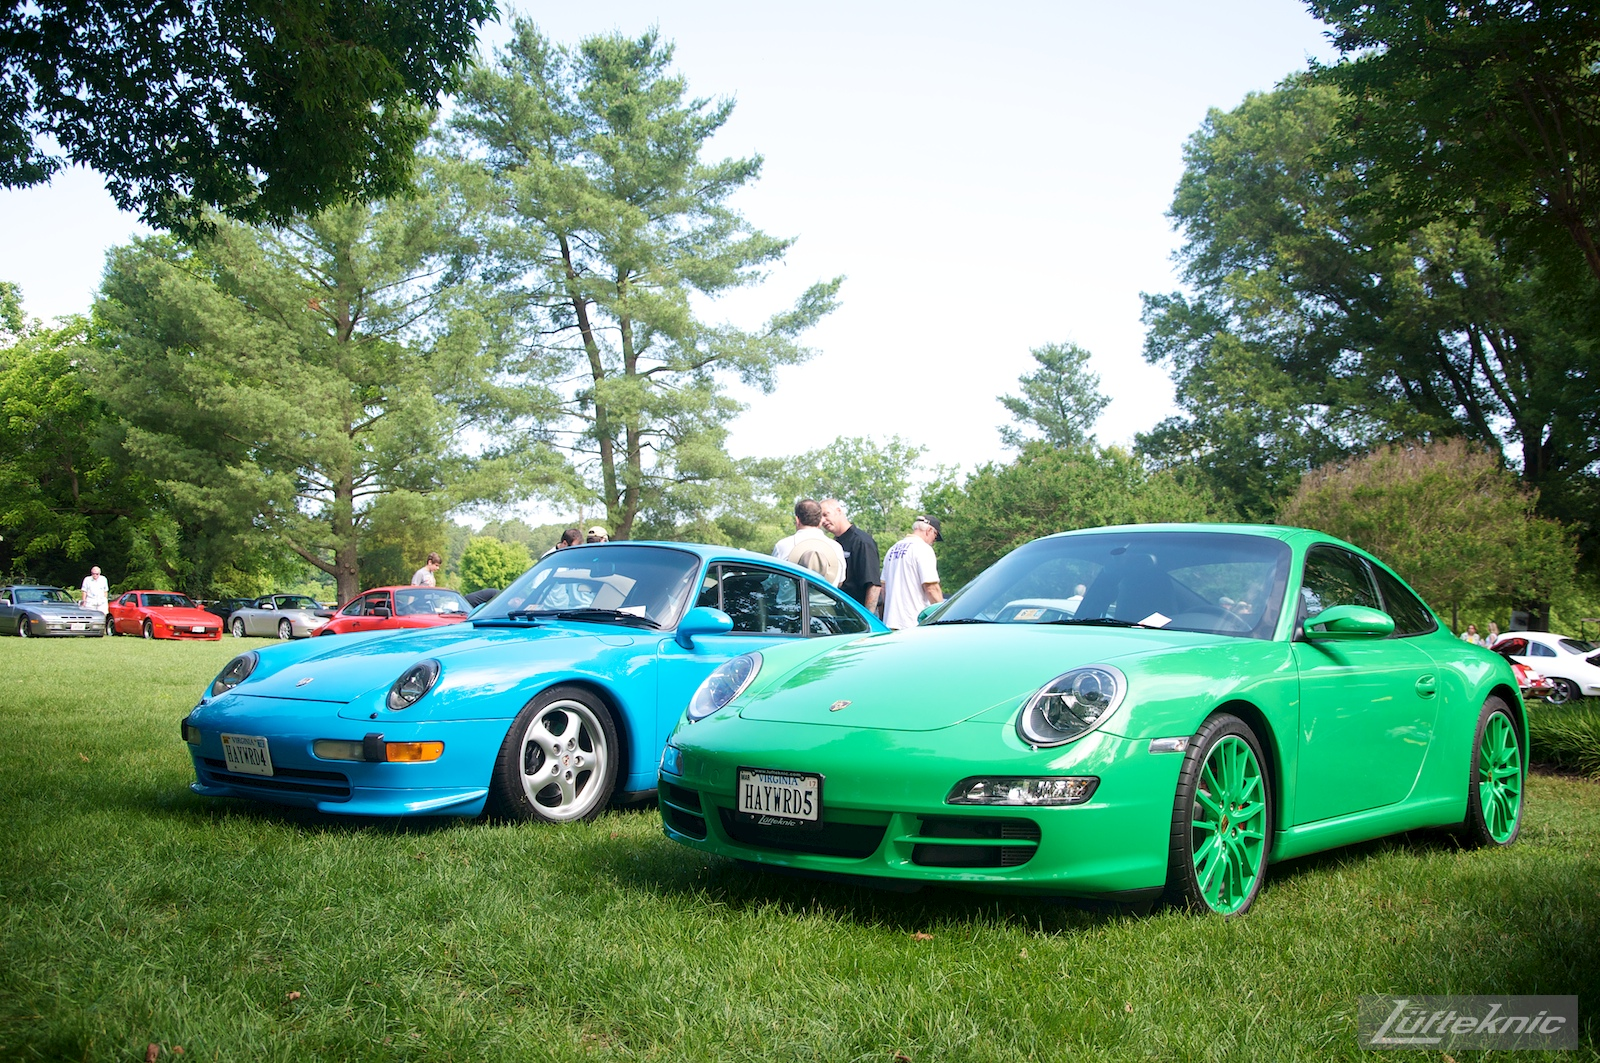 Riviera Blue 993 and Signal Green 997 Porsches at the Richmond Porsche Meet.